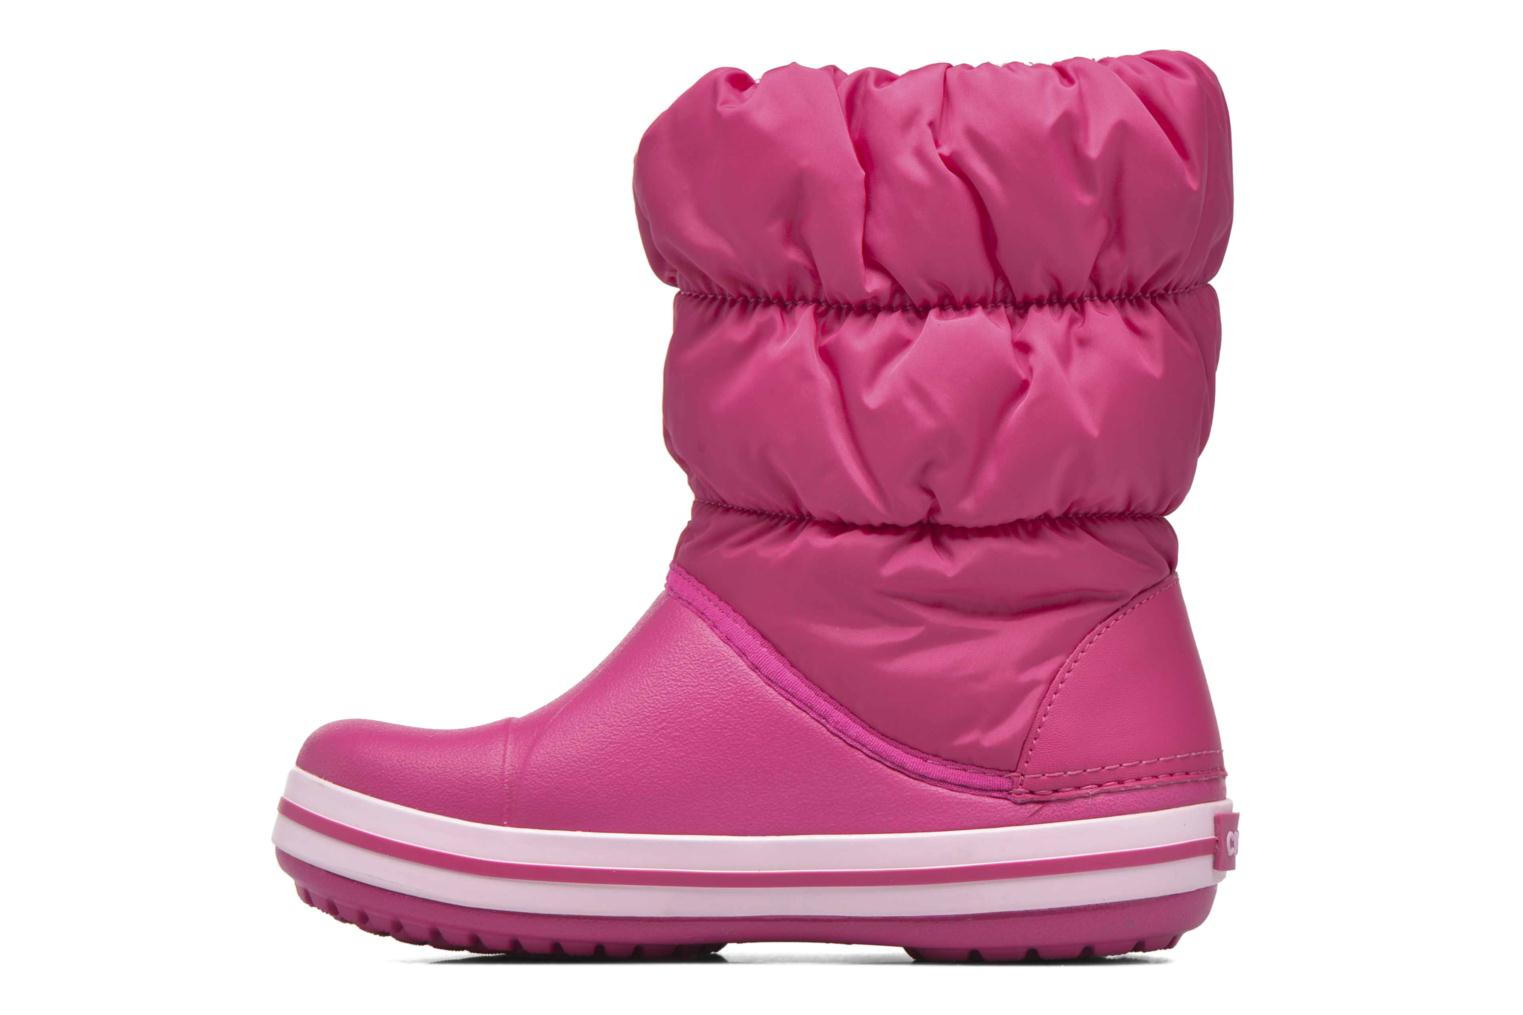 Winter Puff Boot Kids Candy pink